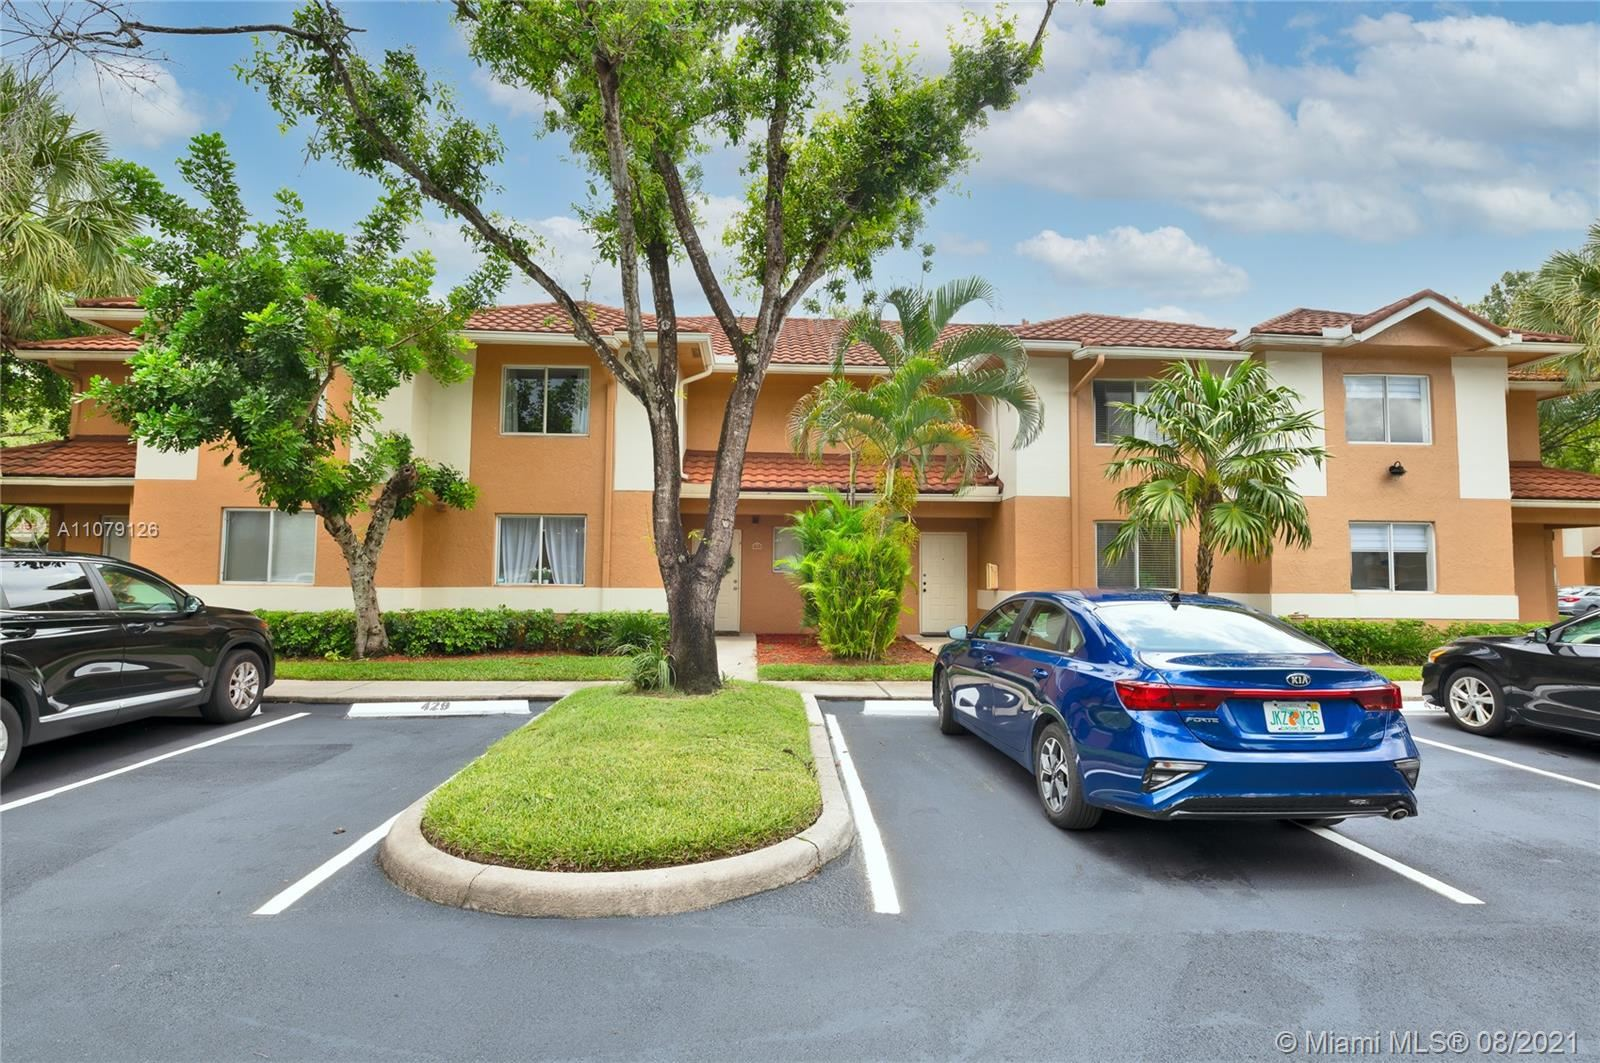 Photo of 791 NW 91st Ter #791, Plantation, FL 33324 (MLS # A11079126)